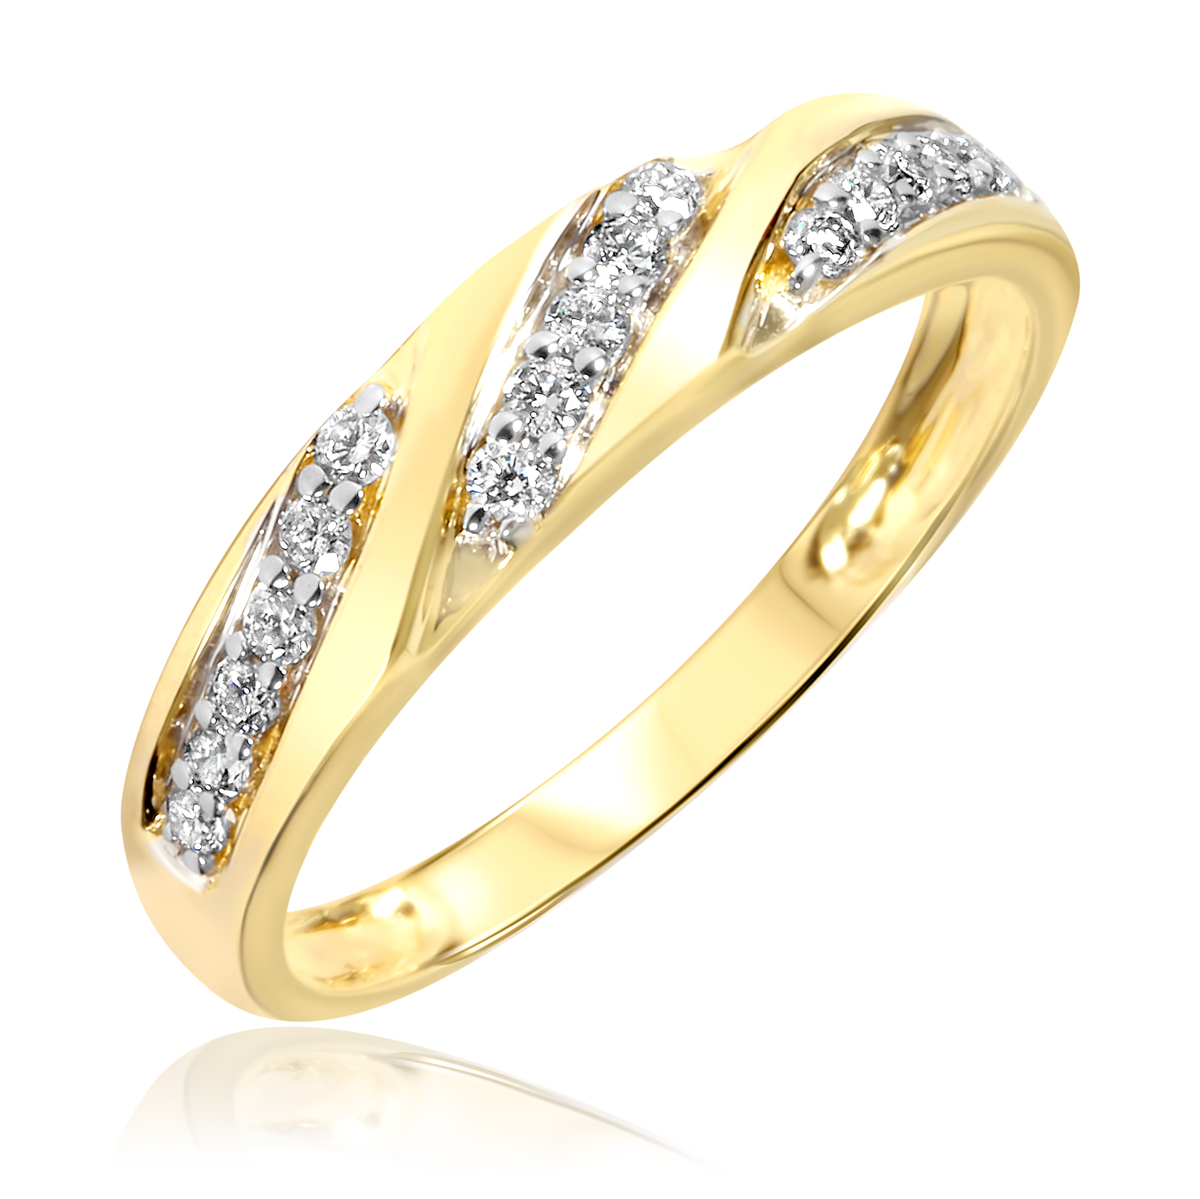 two tone 14k gold cz cluster solitaire wedding ring set trio wedding ring set Wear something beautiful every day This trio of wedding rings